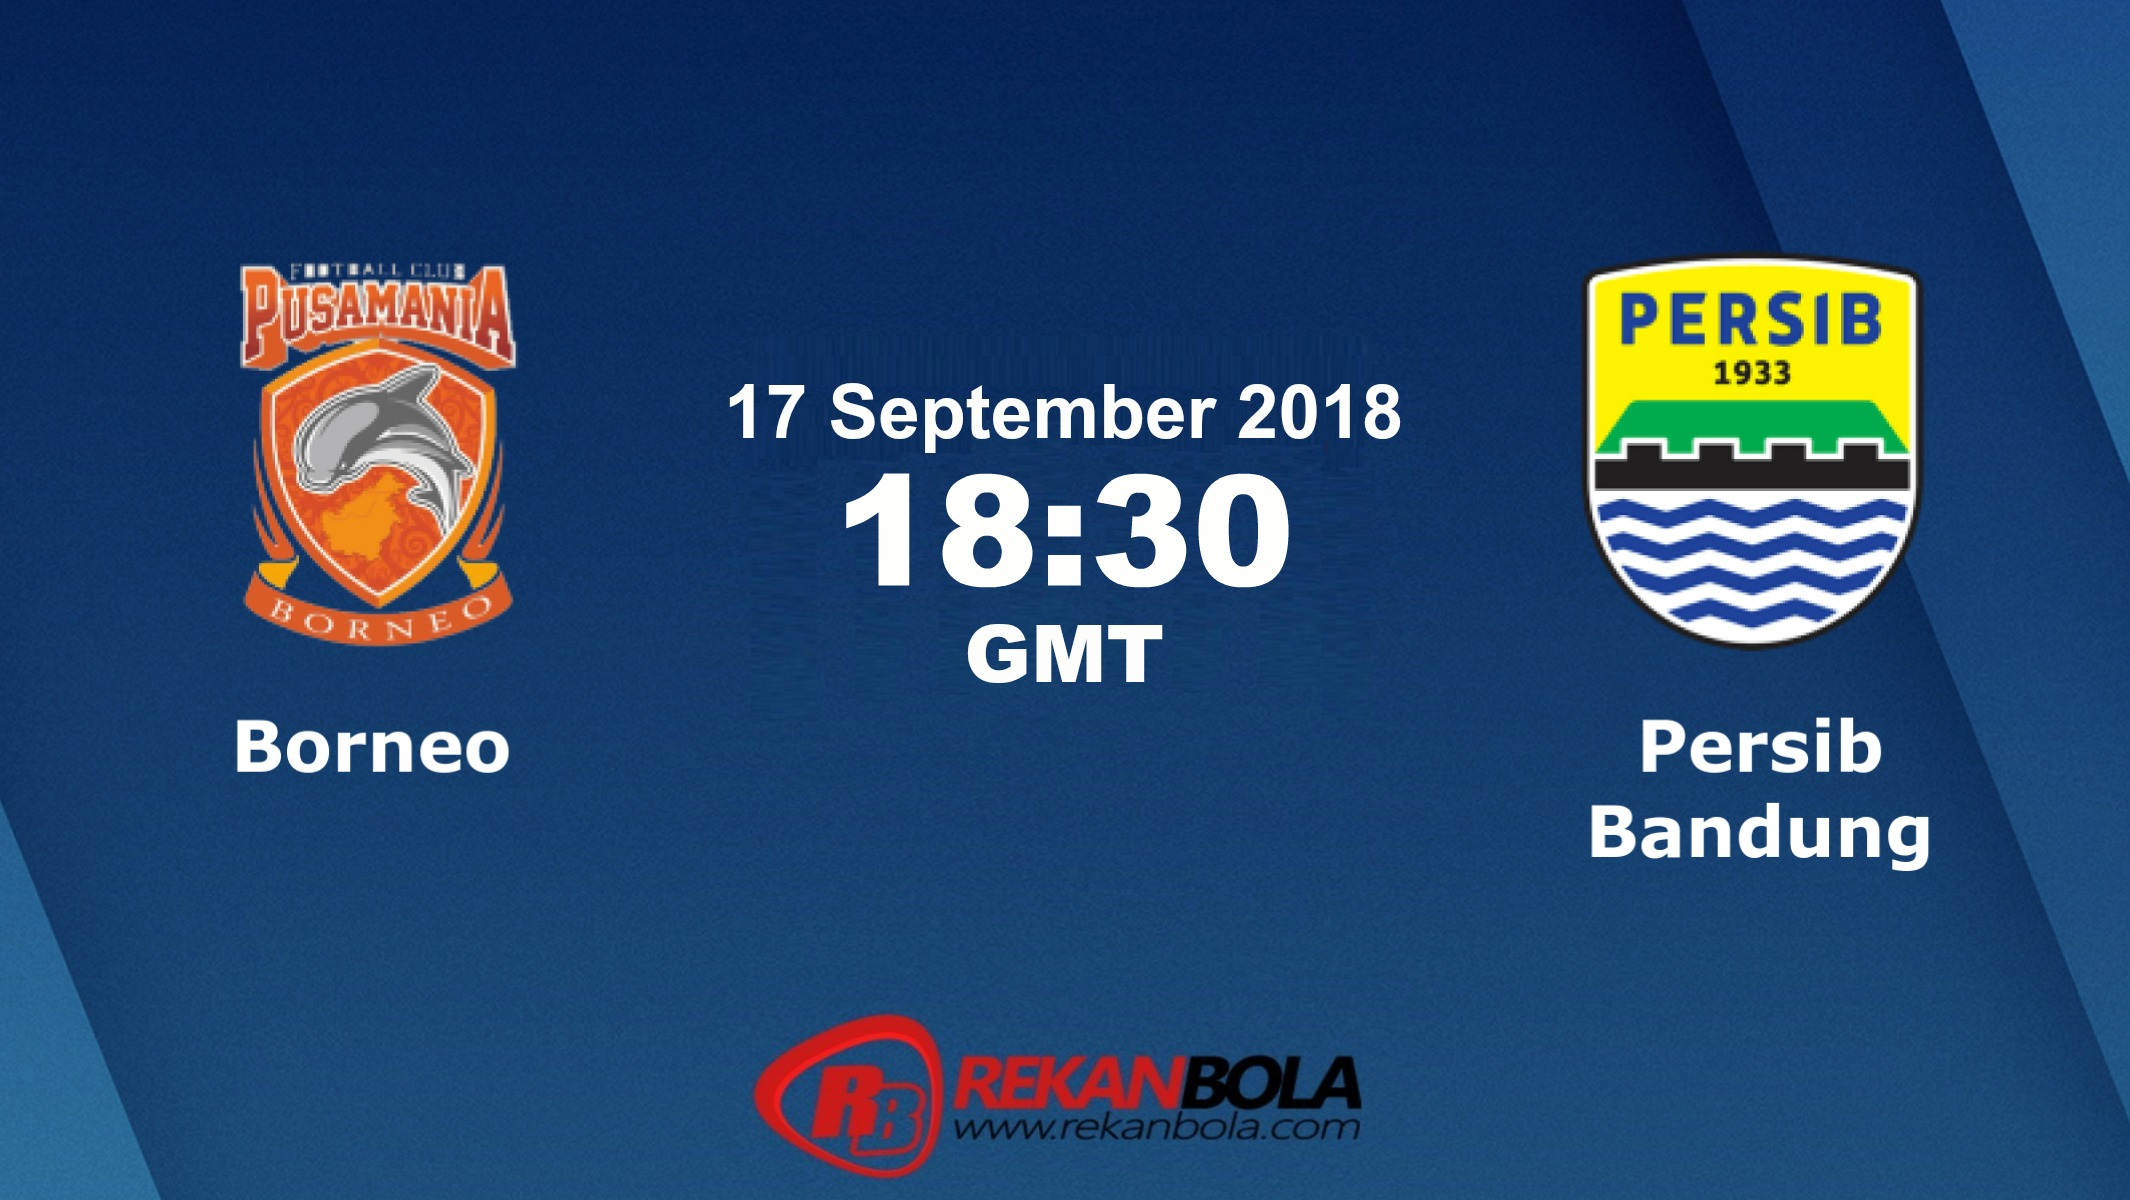 Nonton Siaran Live Streaming Borneo Vs Persib 17 September 2018